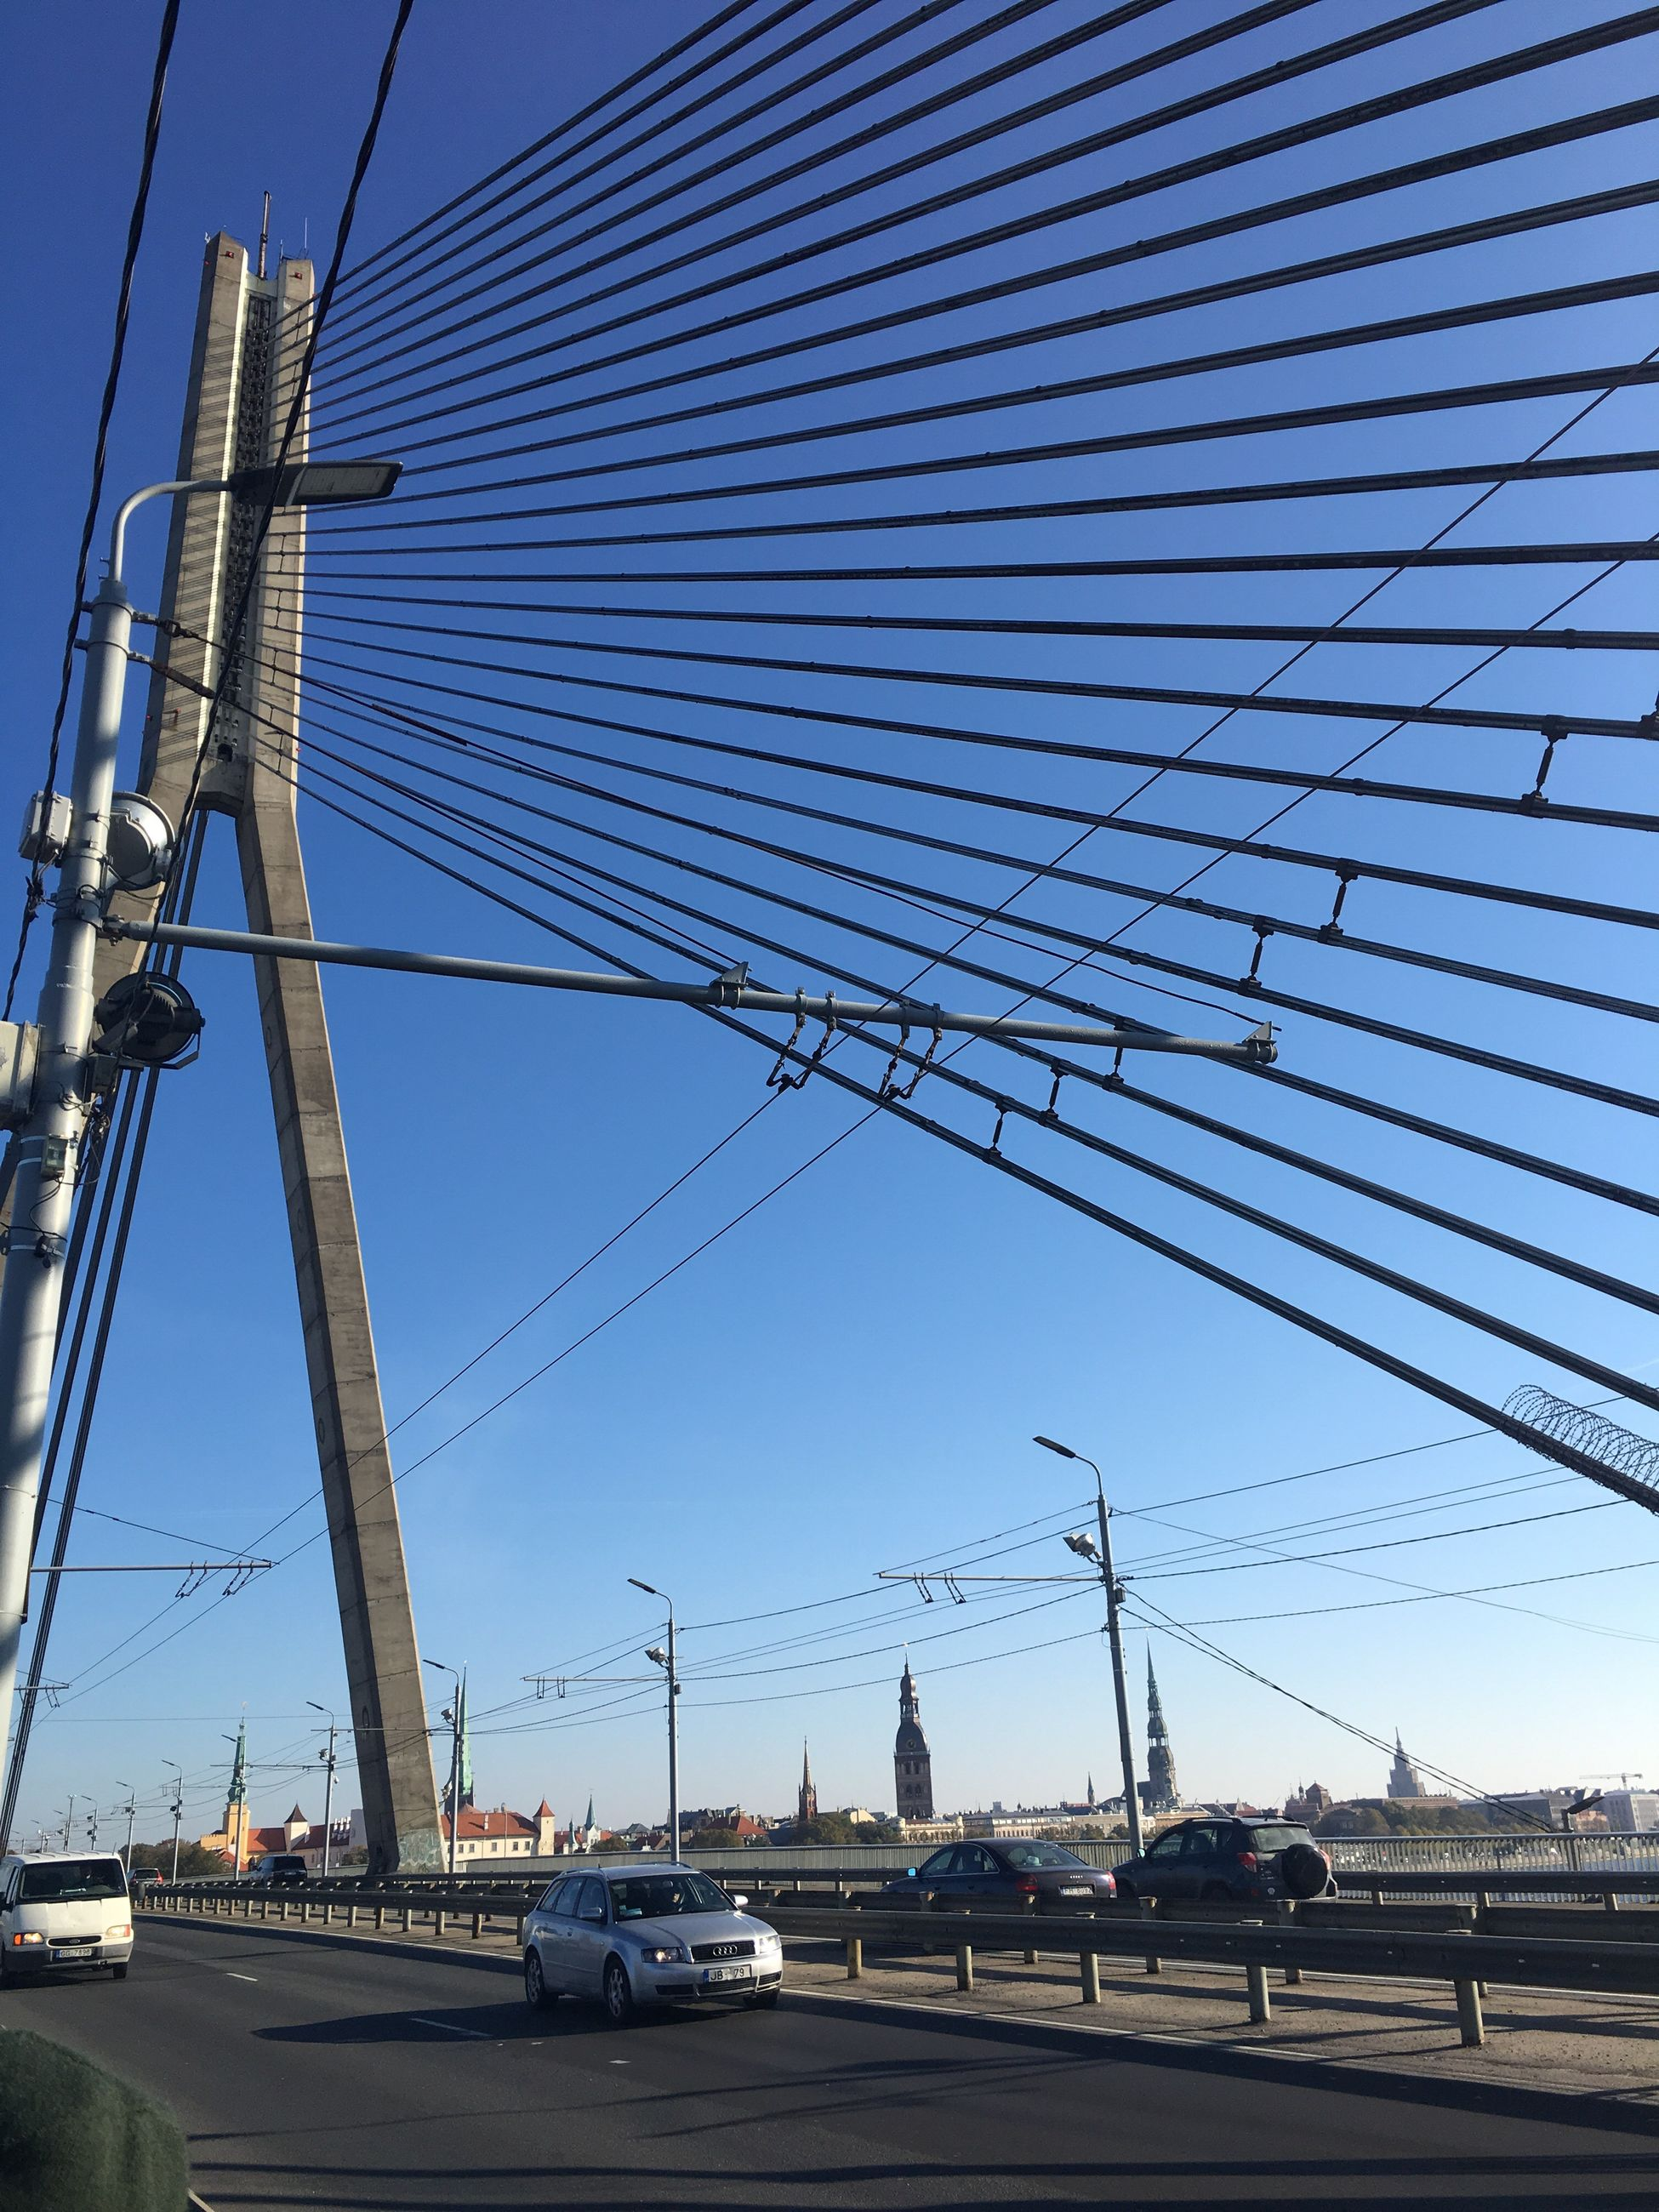 built structure, sky, transportation, architecture, day, no people, outdoors, metal, clear sky, building exterior, city, bridge - man made structure, low angle view, connection, electricity pylon, suspension bridge